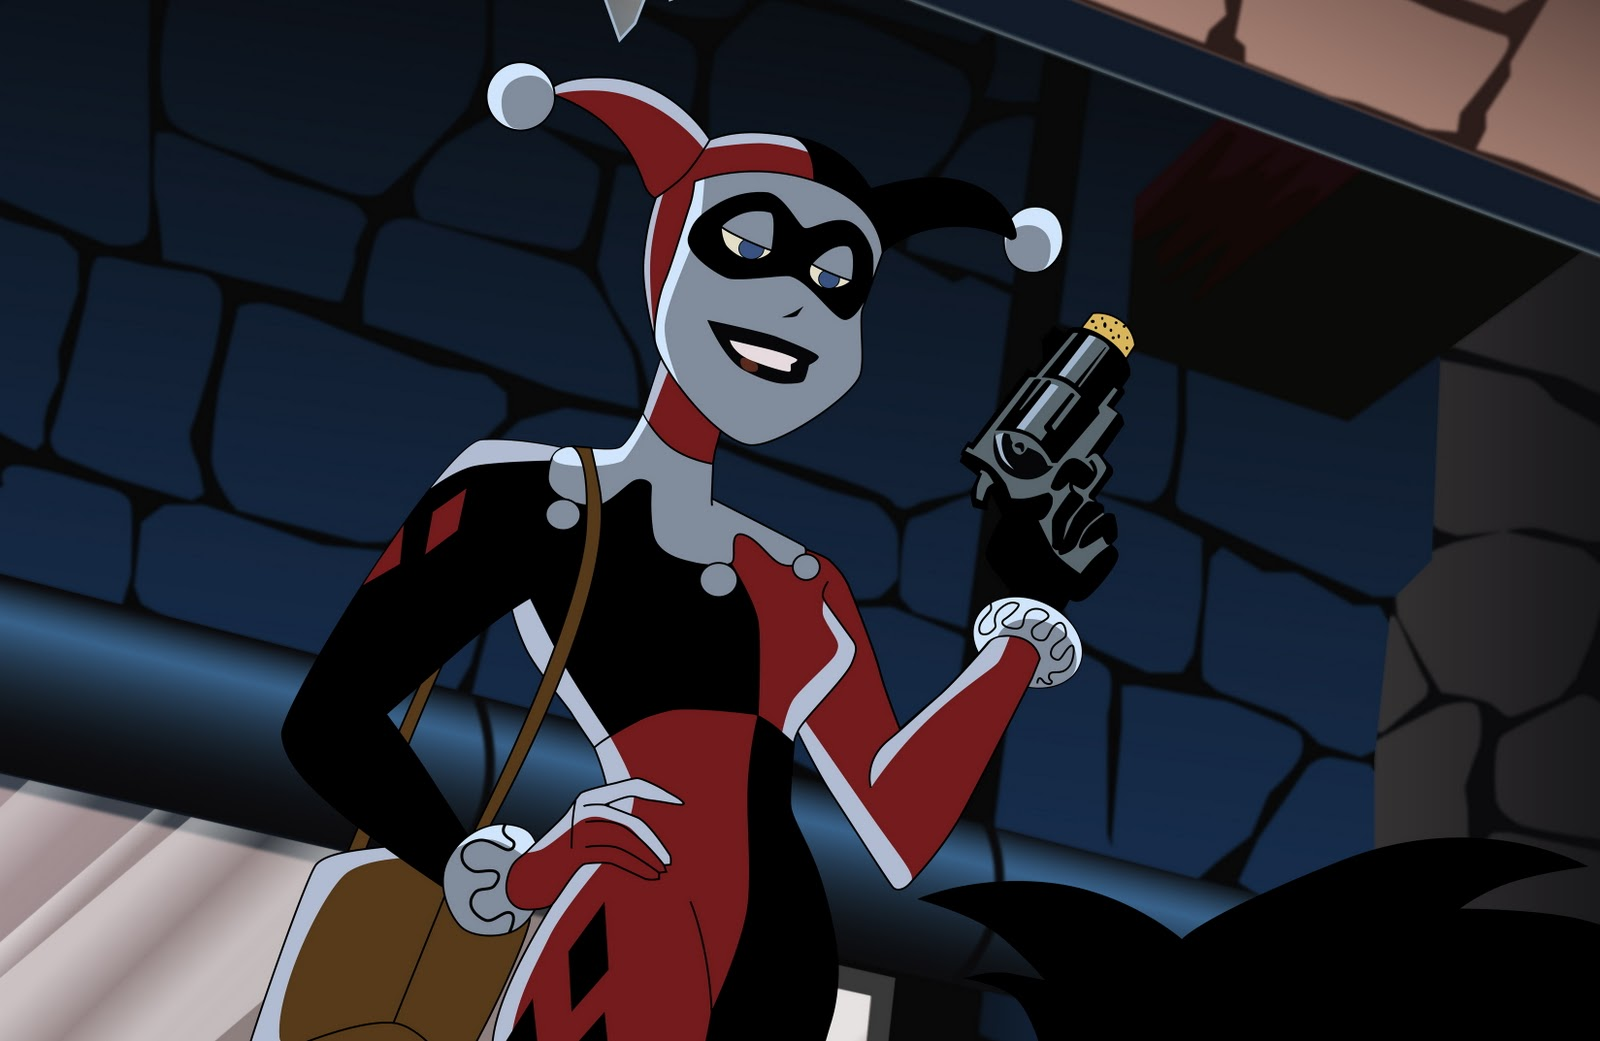 Harley in Batman the Animated Series had a red and black unitard and jester hat.